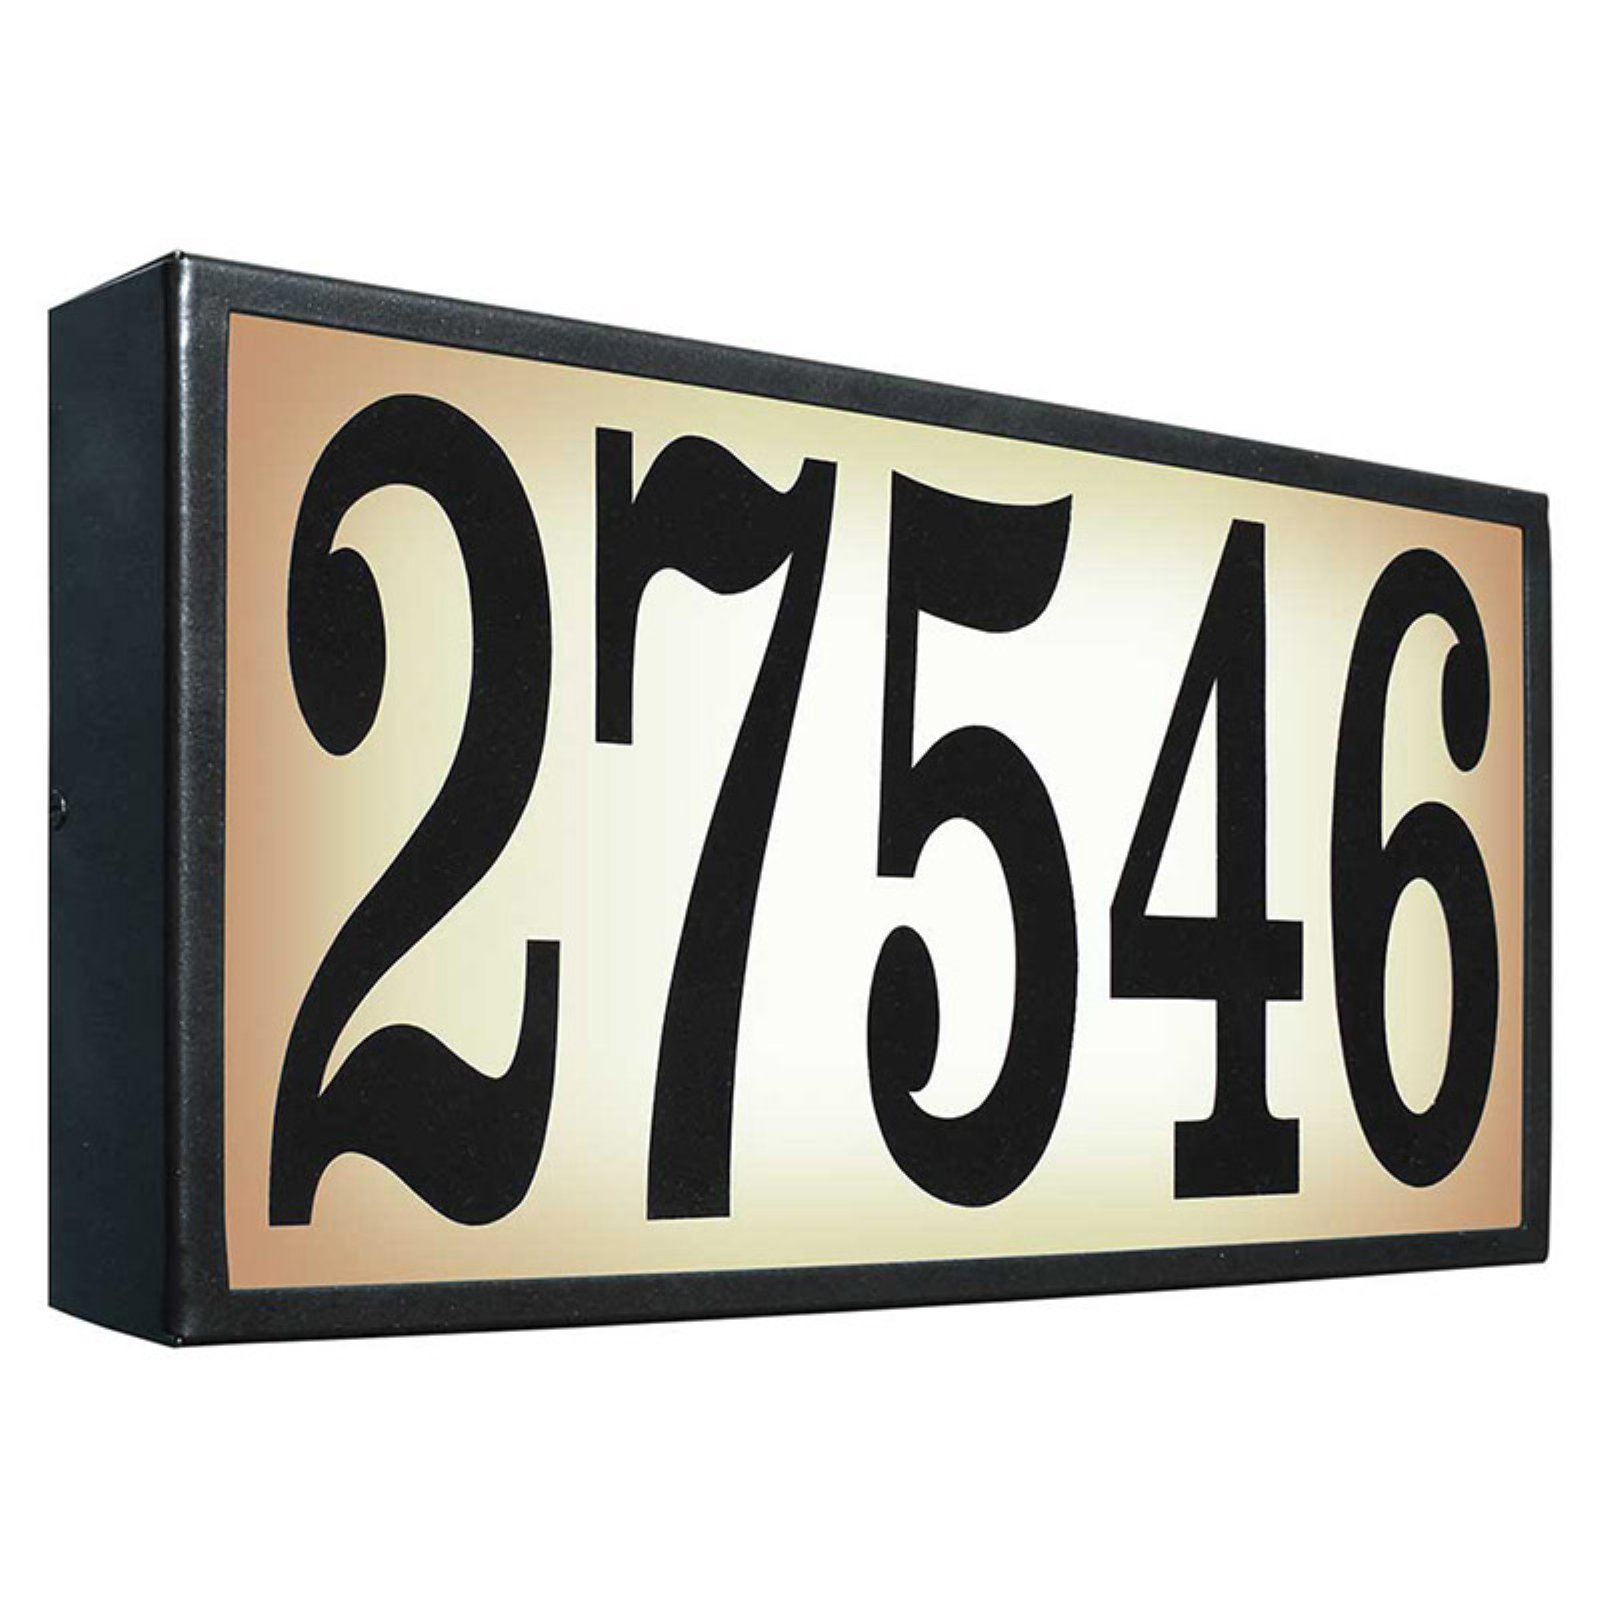 QualArc Extra-Large Lighted Address Plaque